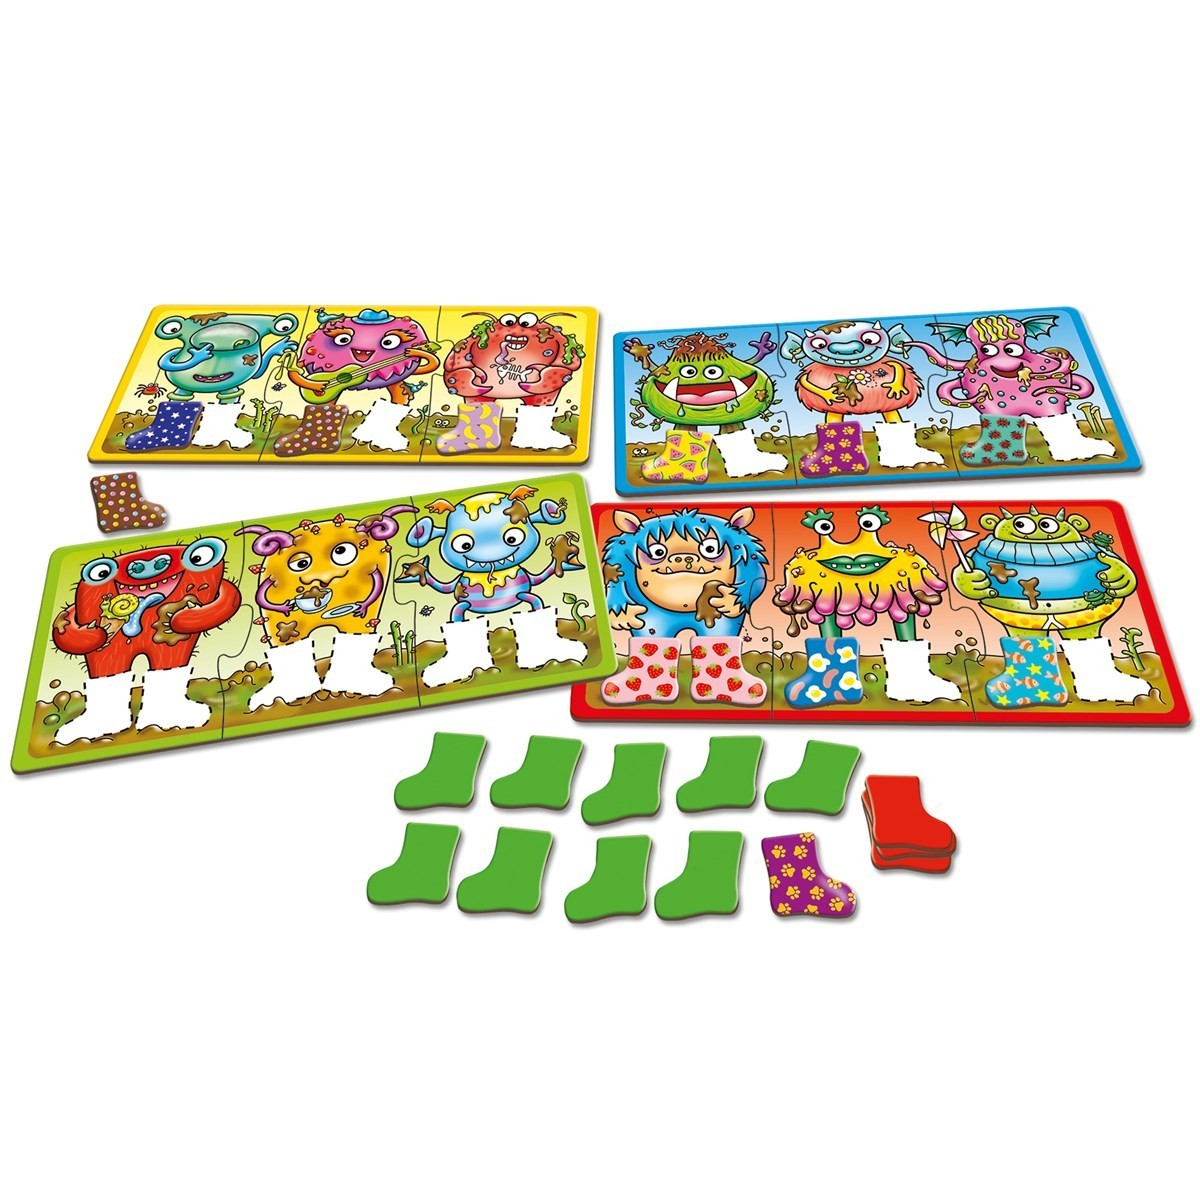 Orchard Toys: Smelly Wellies Game image